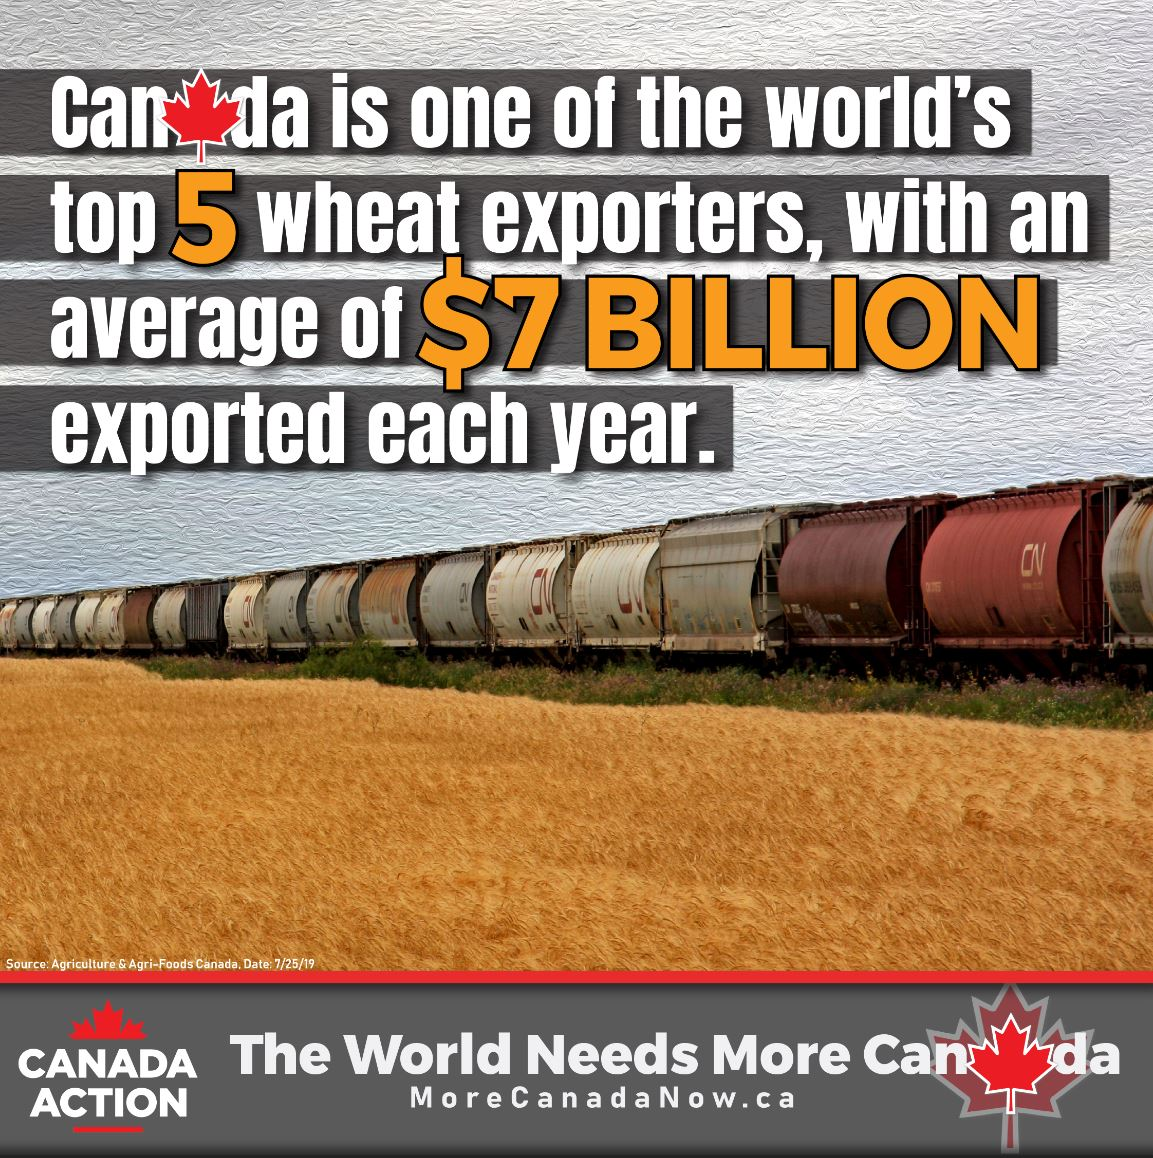 canada wheat exports top 5 global exporter